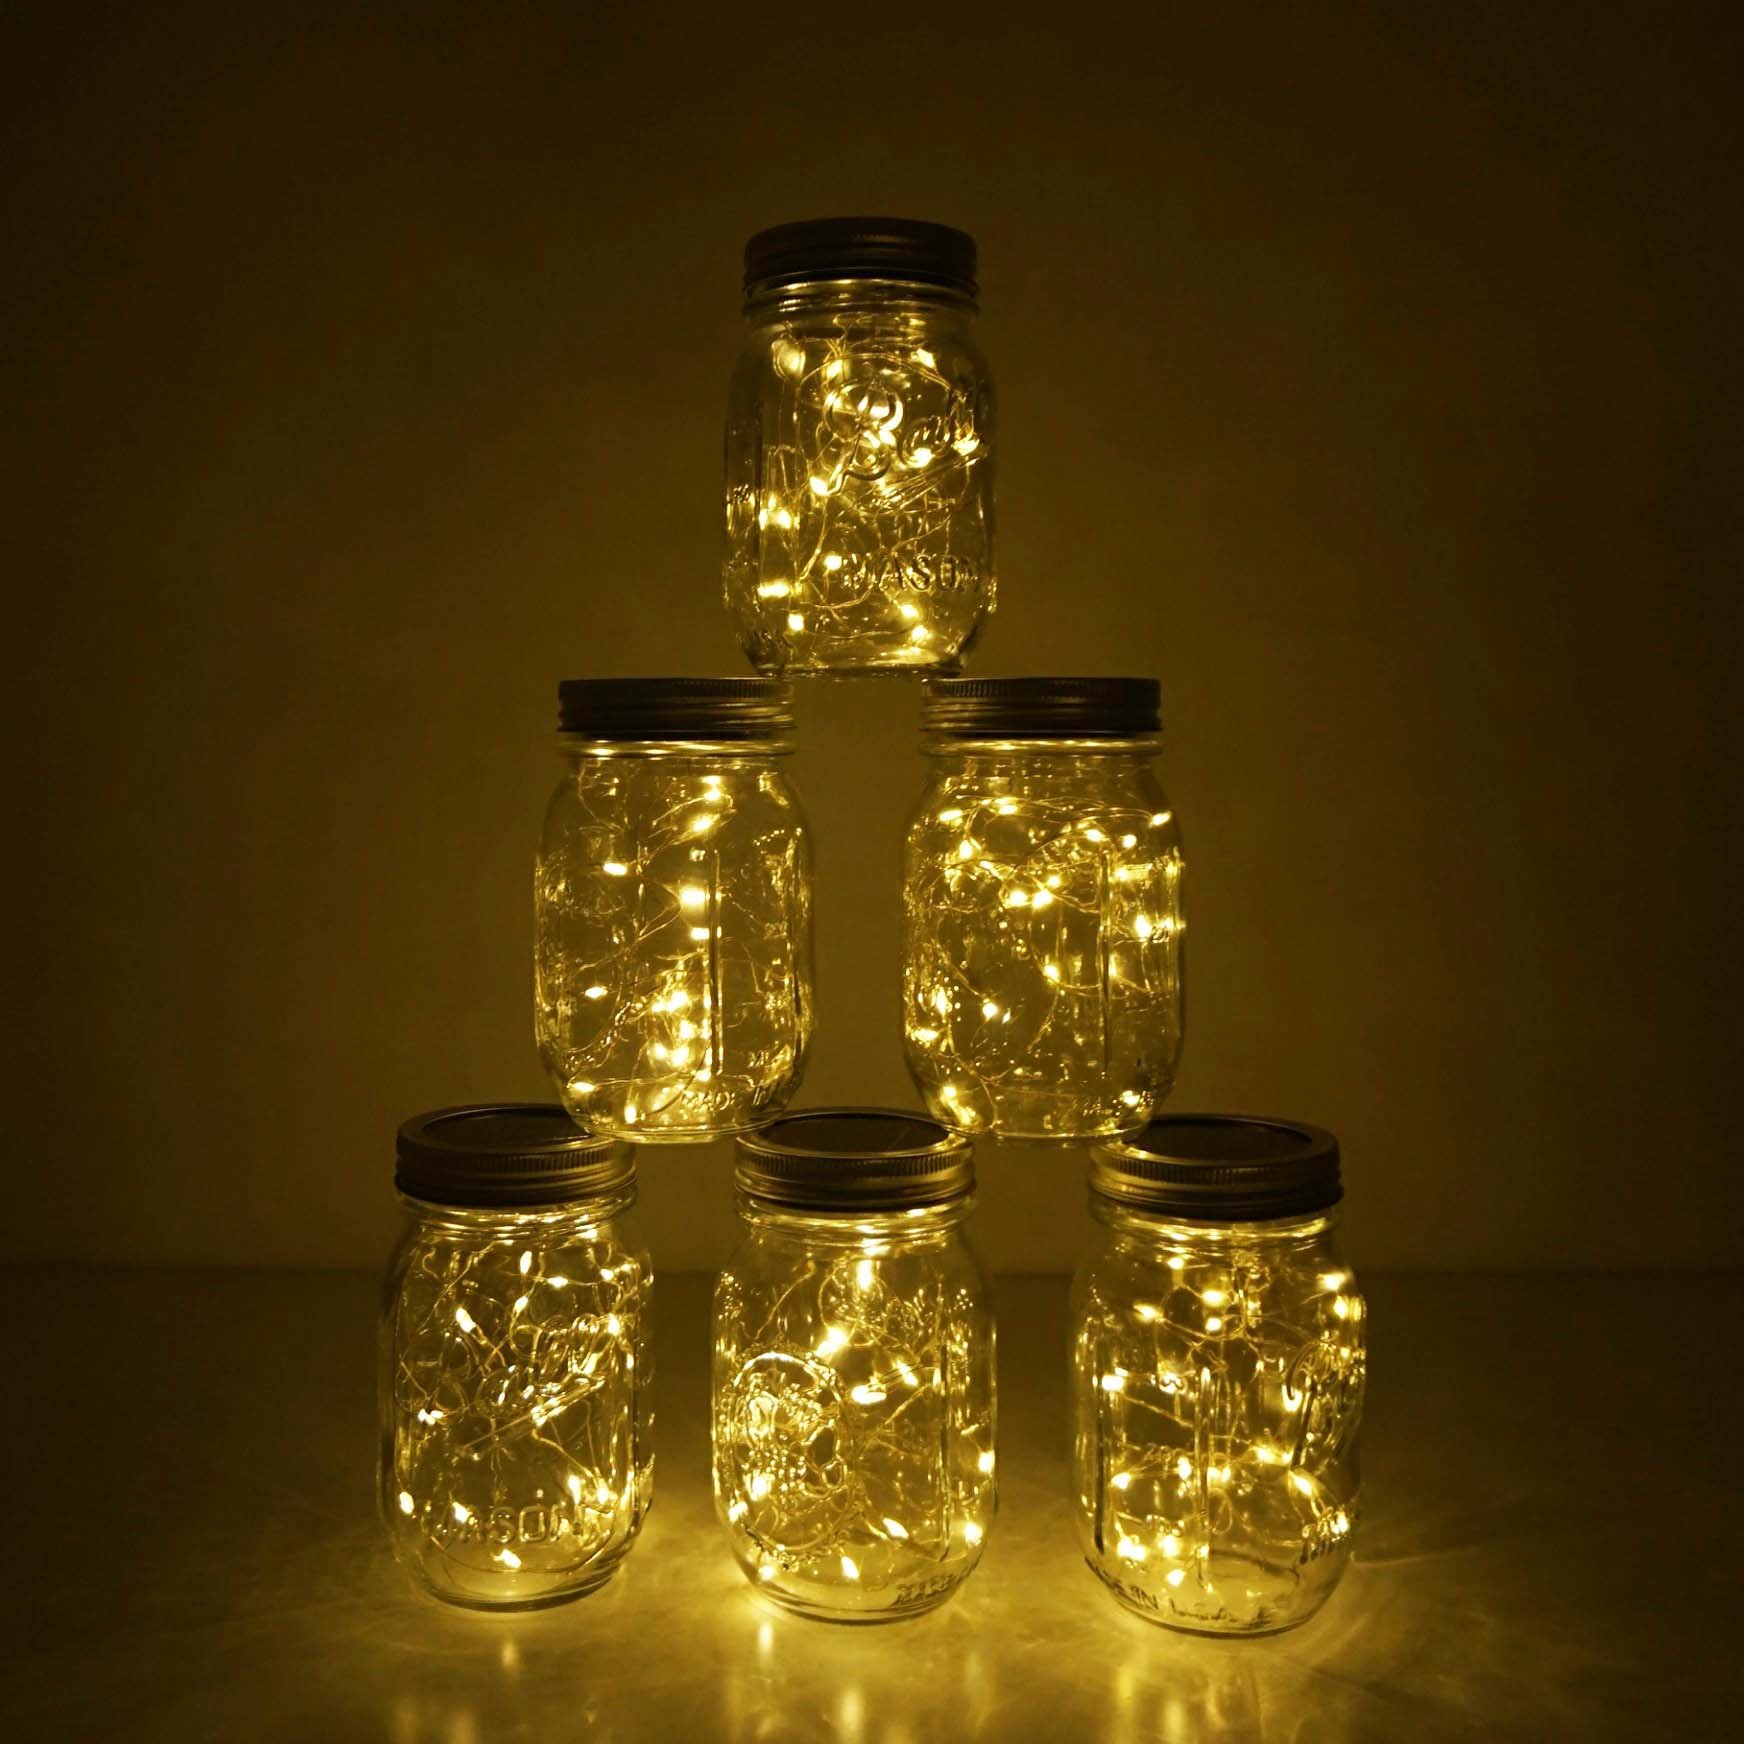 6 Pack Mason Jar Lights 10 LED Solar Warm White Fairy String Lights Lids Insert for Patio Yard Garden Party Wedding Christmas Decorative Lighting Fit for Regular Mouth Jars(Jars Not Included) by Decem (Image #6)